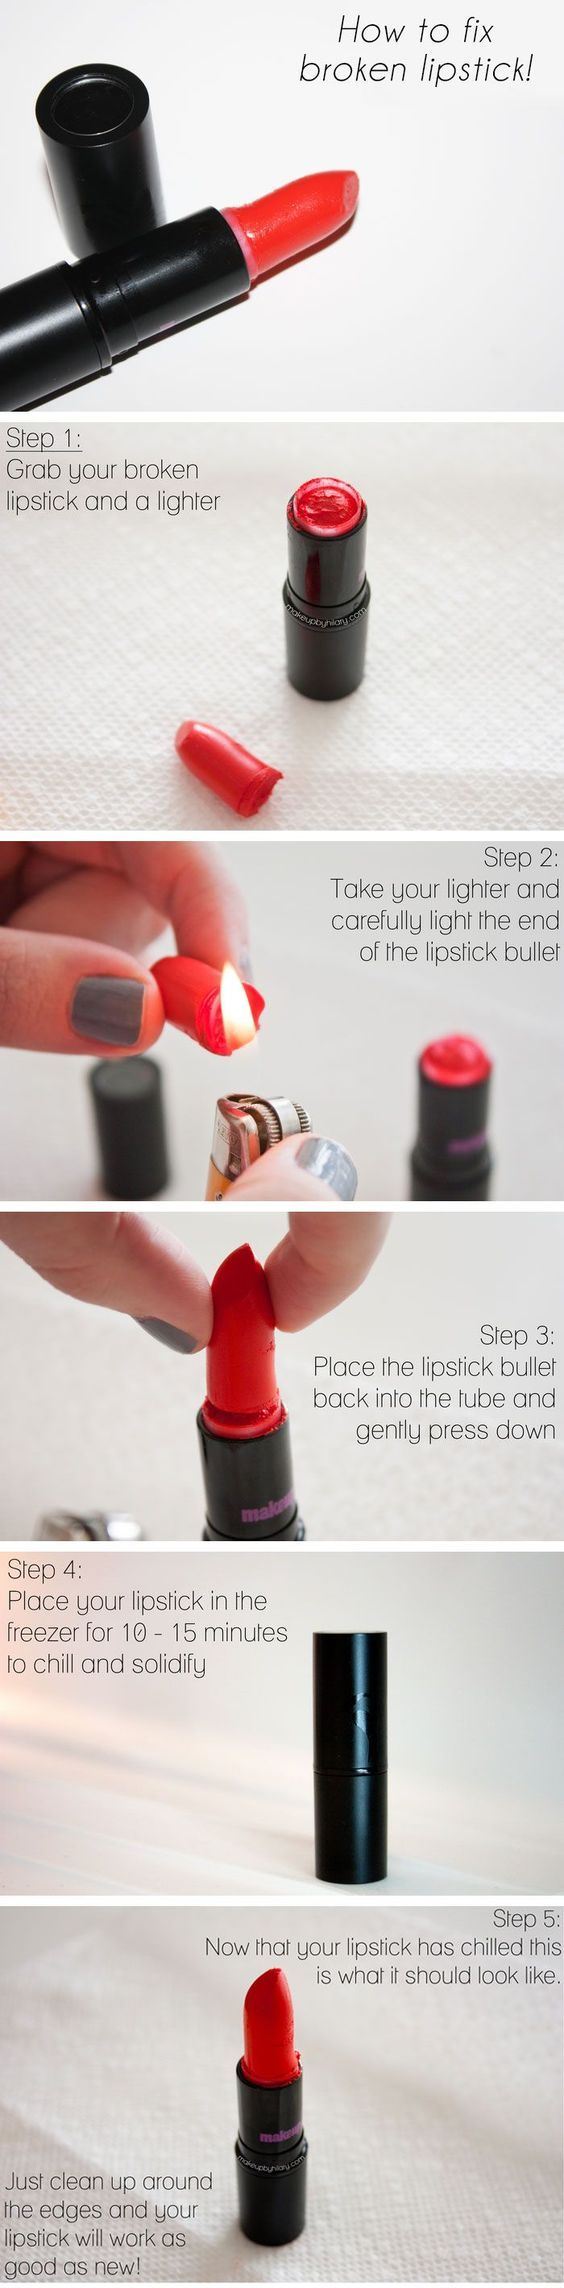 How to Fix Broken Lipstick | Click Pic for 25 Simple Life Hacks Every Girl Should Know | DIY Beauty Hacks Every Girl Should Know DIY beauty #diy: